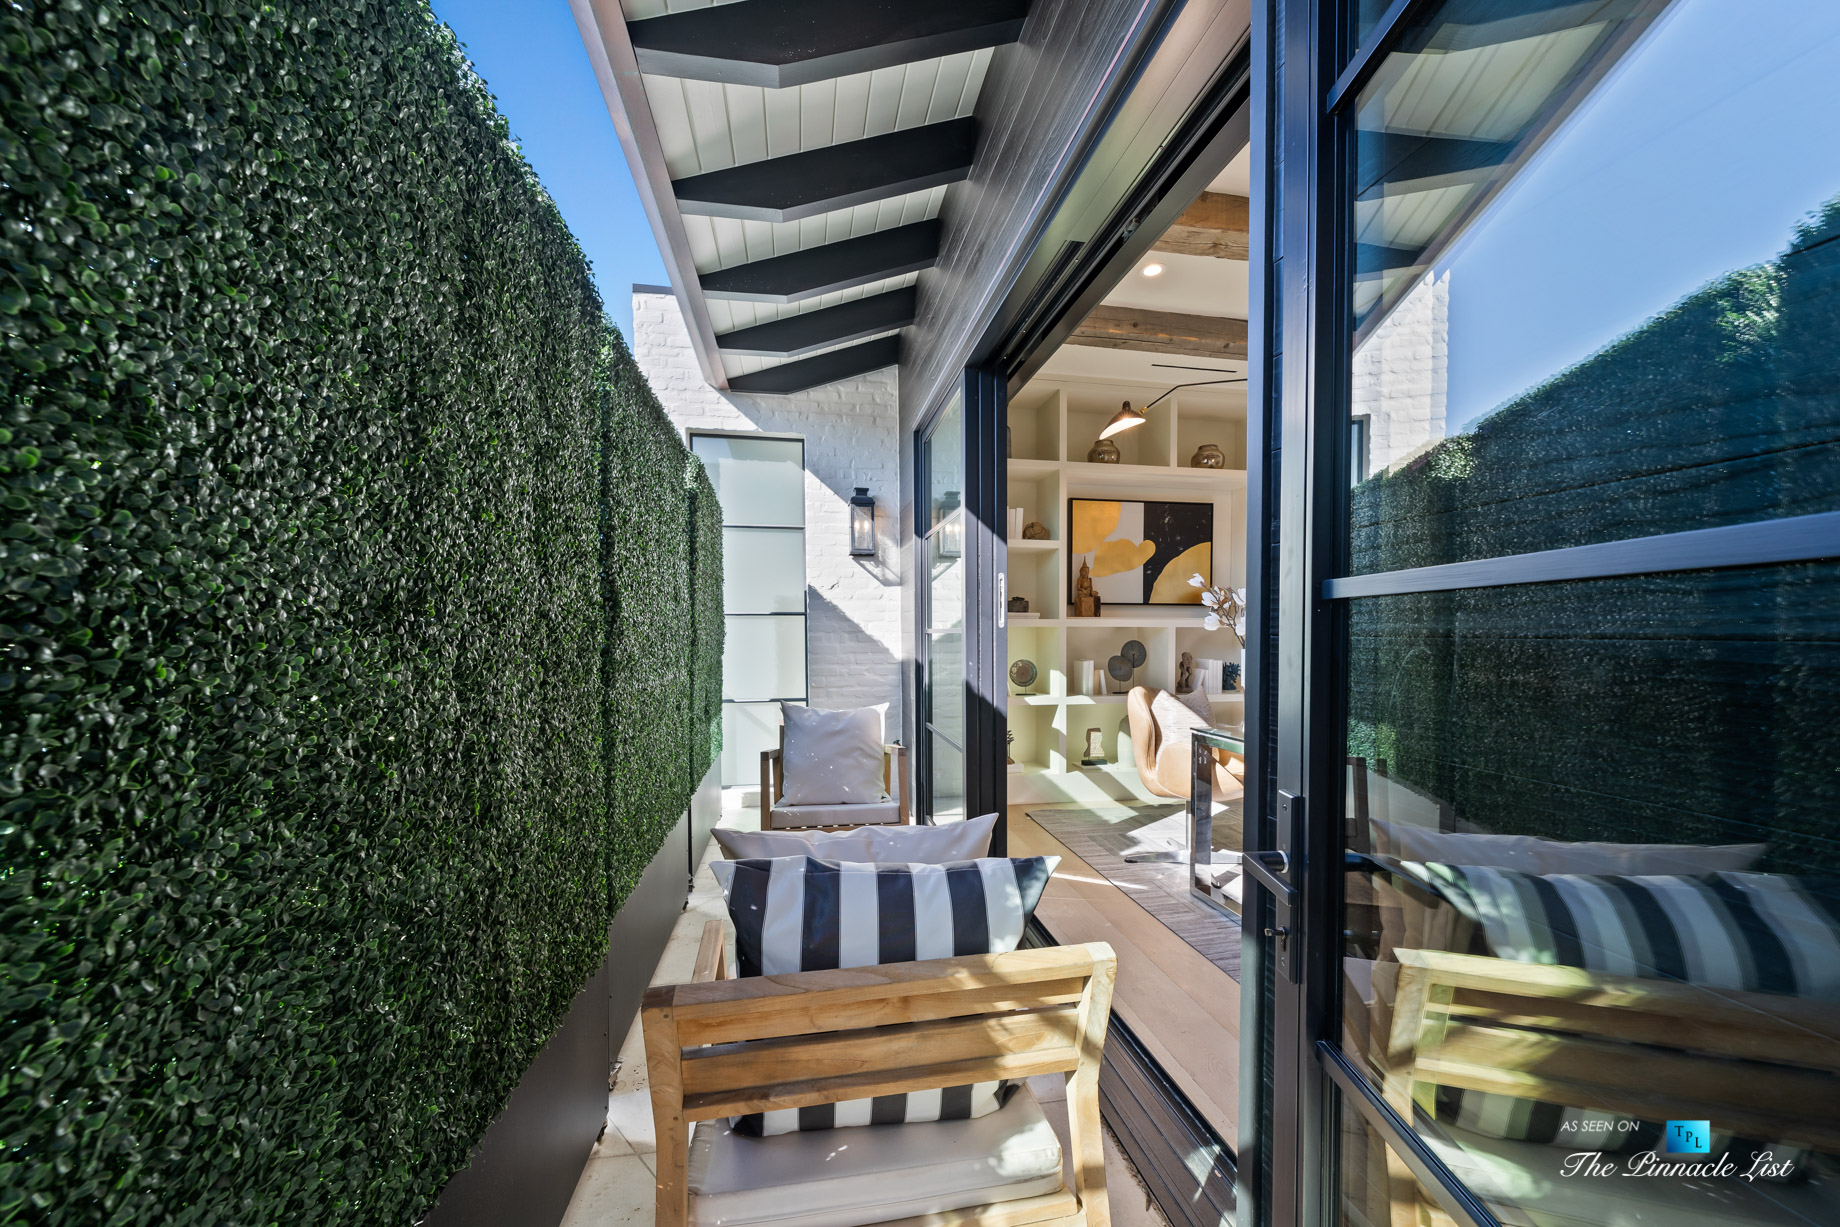 508 The Strand, Manhattan Beach, CA, USA - Spectacular Lower Level Office Patio - Luxury Real Estate - Oceanfront Home